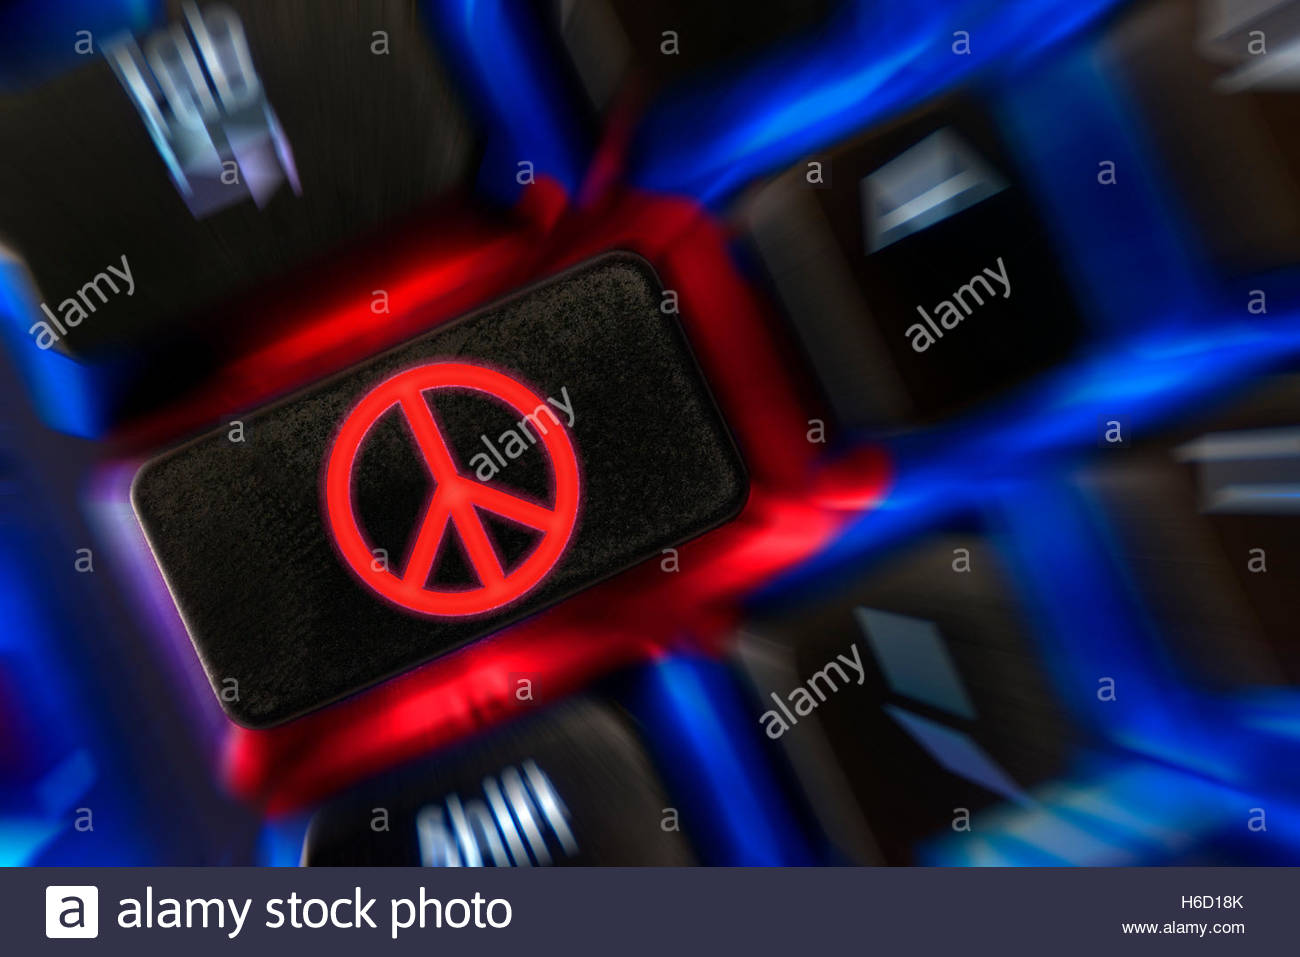 Cnd Symbol And The Peace Sign Stock Photos Cnd Symbol And The